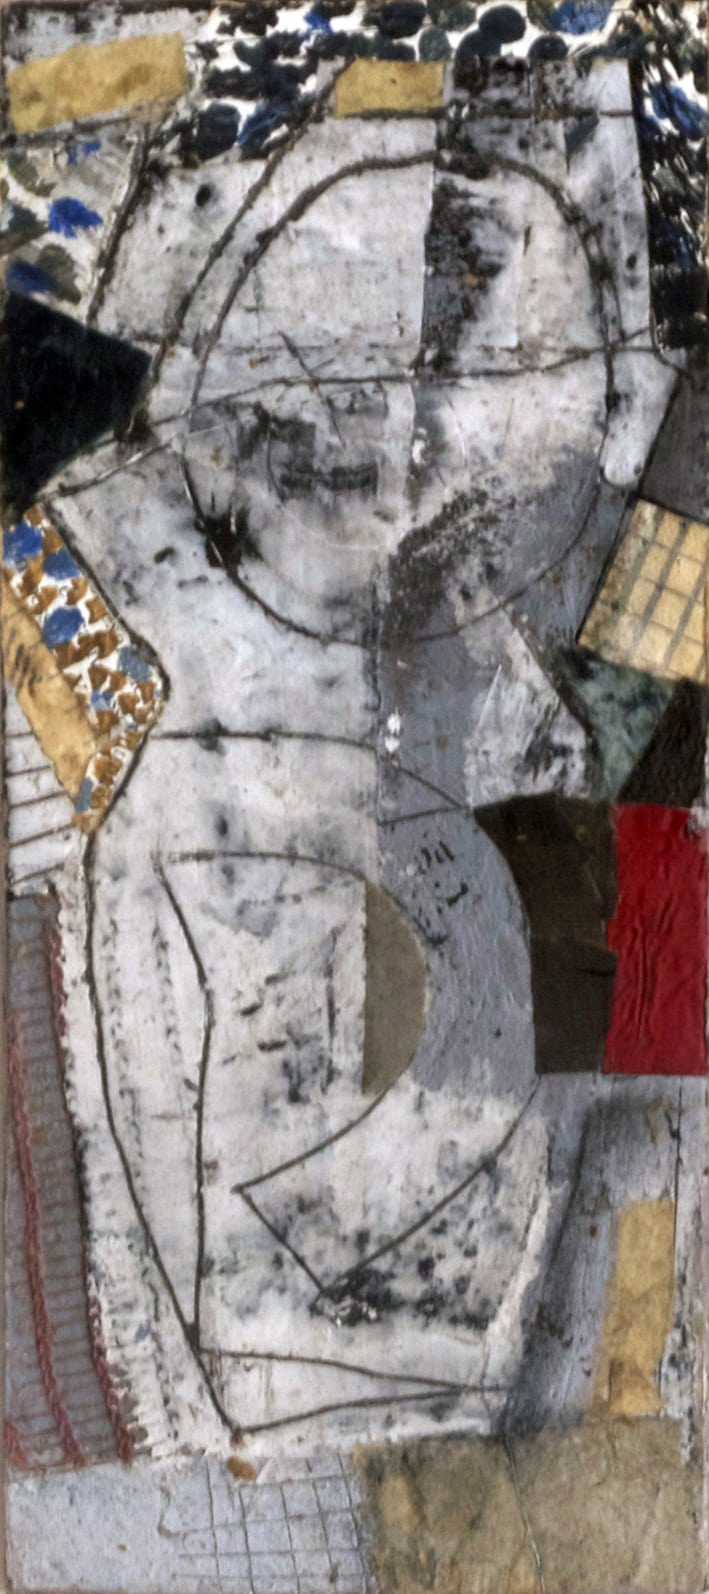 White_Jug_Oil_&_Collage_1986_90_220x100mm_GBP3600